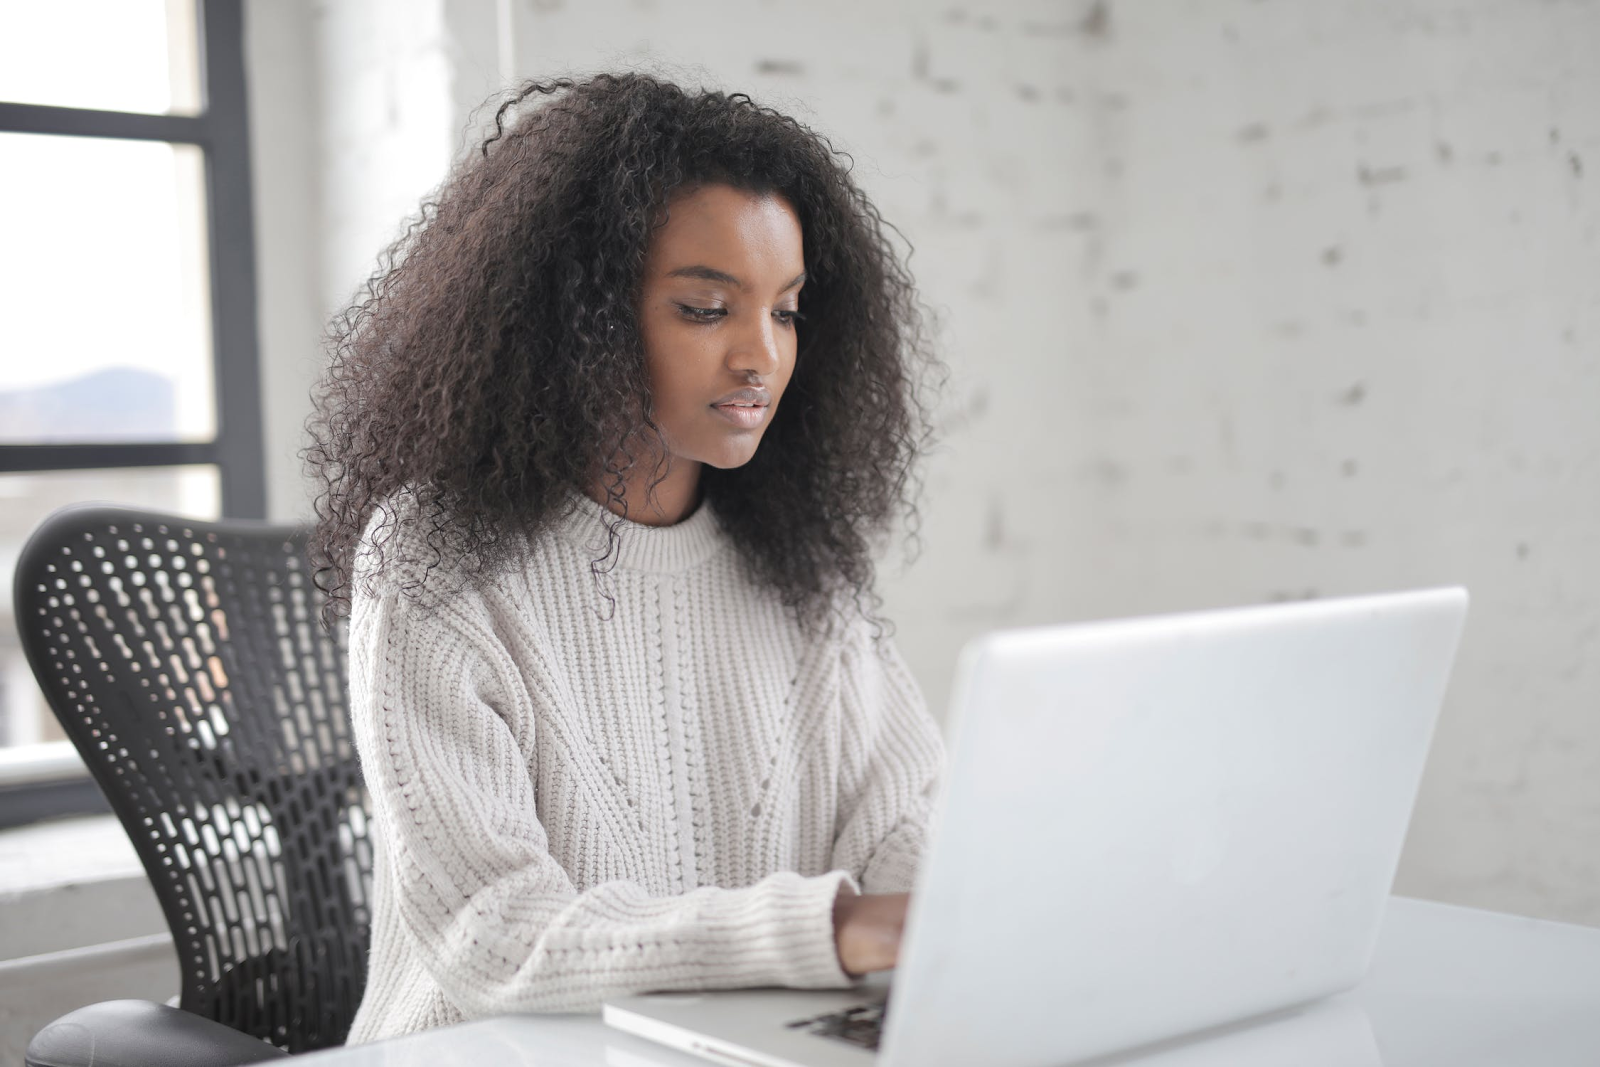 Woman wearing a white sweater using her laptop